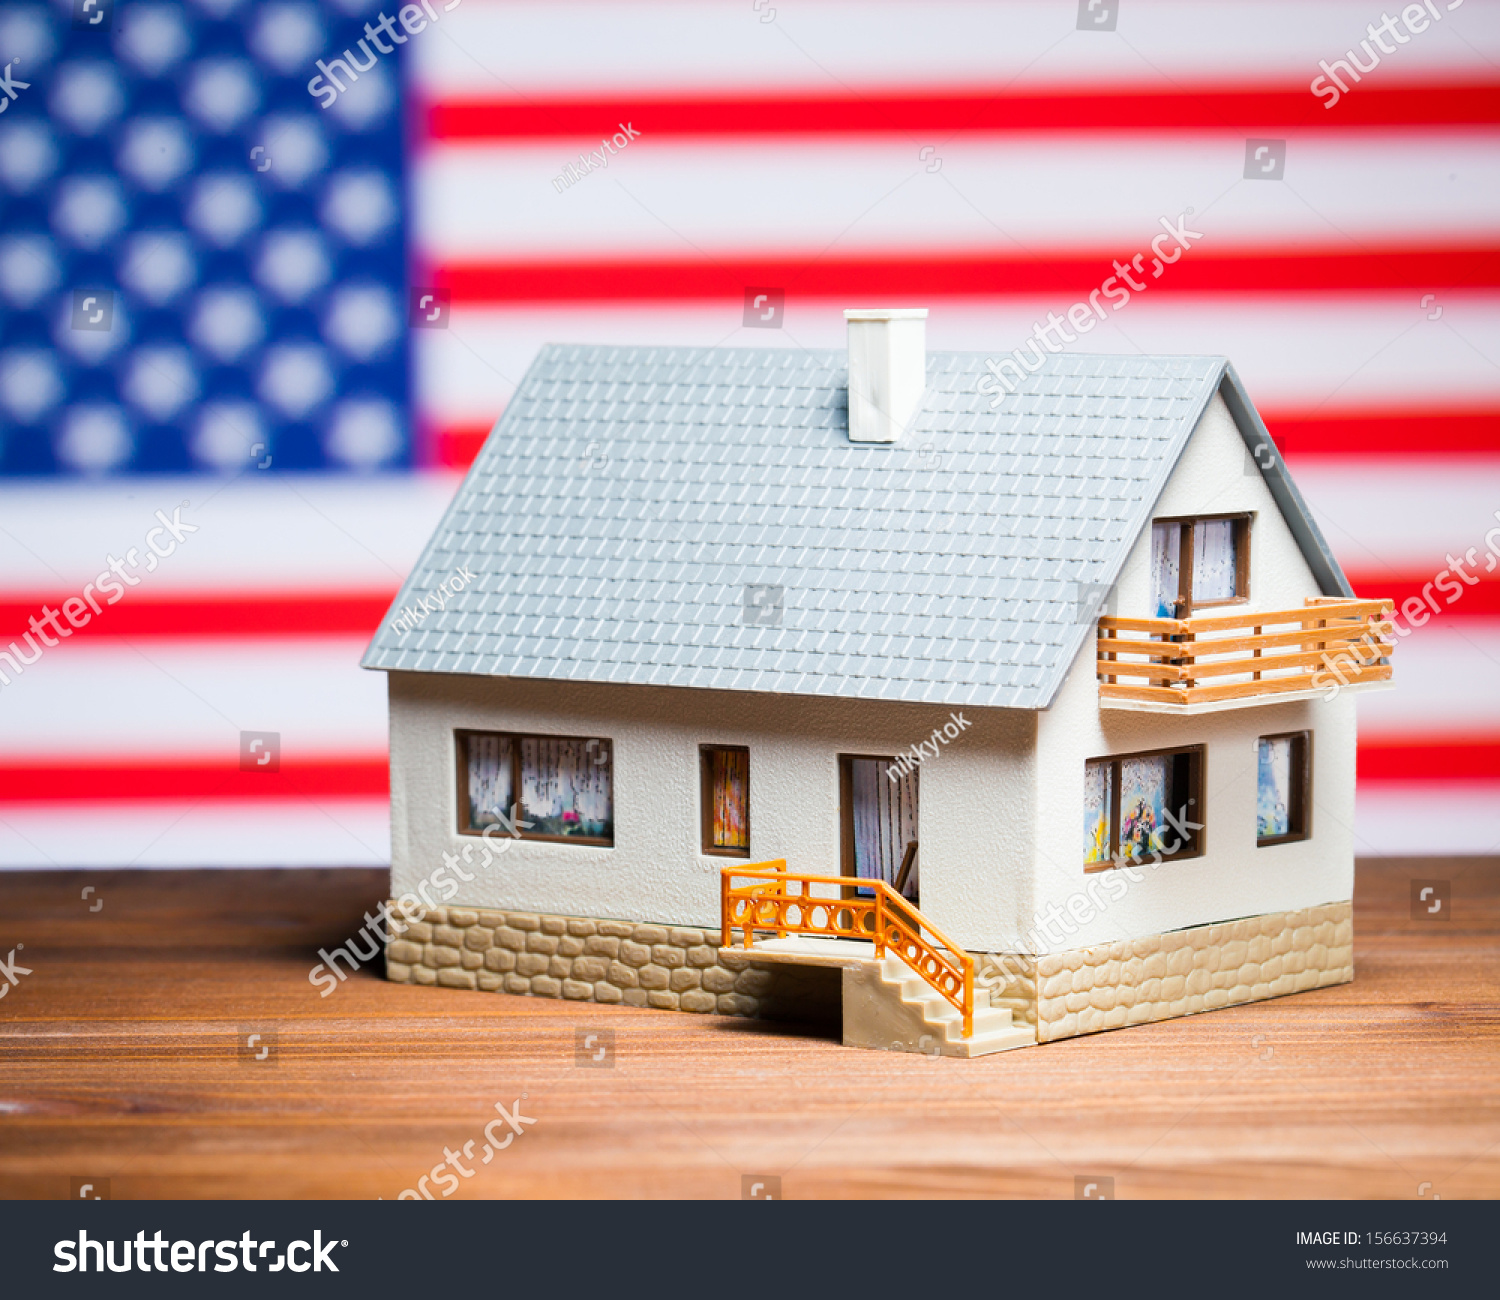 Usa Real Estate Concept House Against American Flag Stock